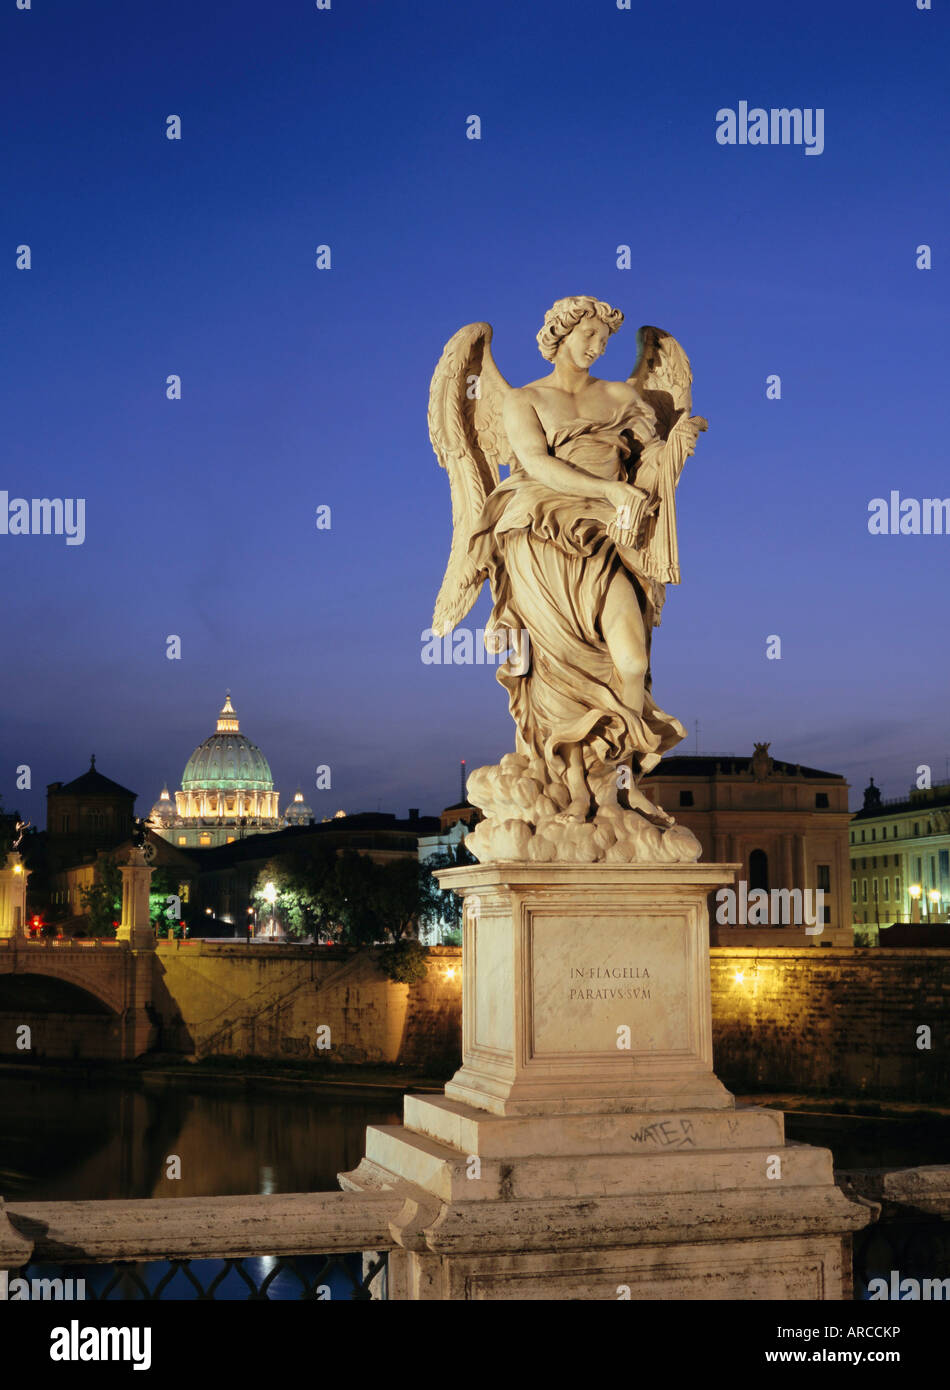 Angelic statue on Ponte Sant Angelo, St. Peter's, Vatican, Rome, Italy - Stock Image